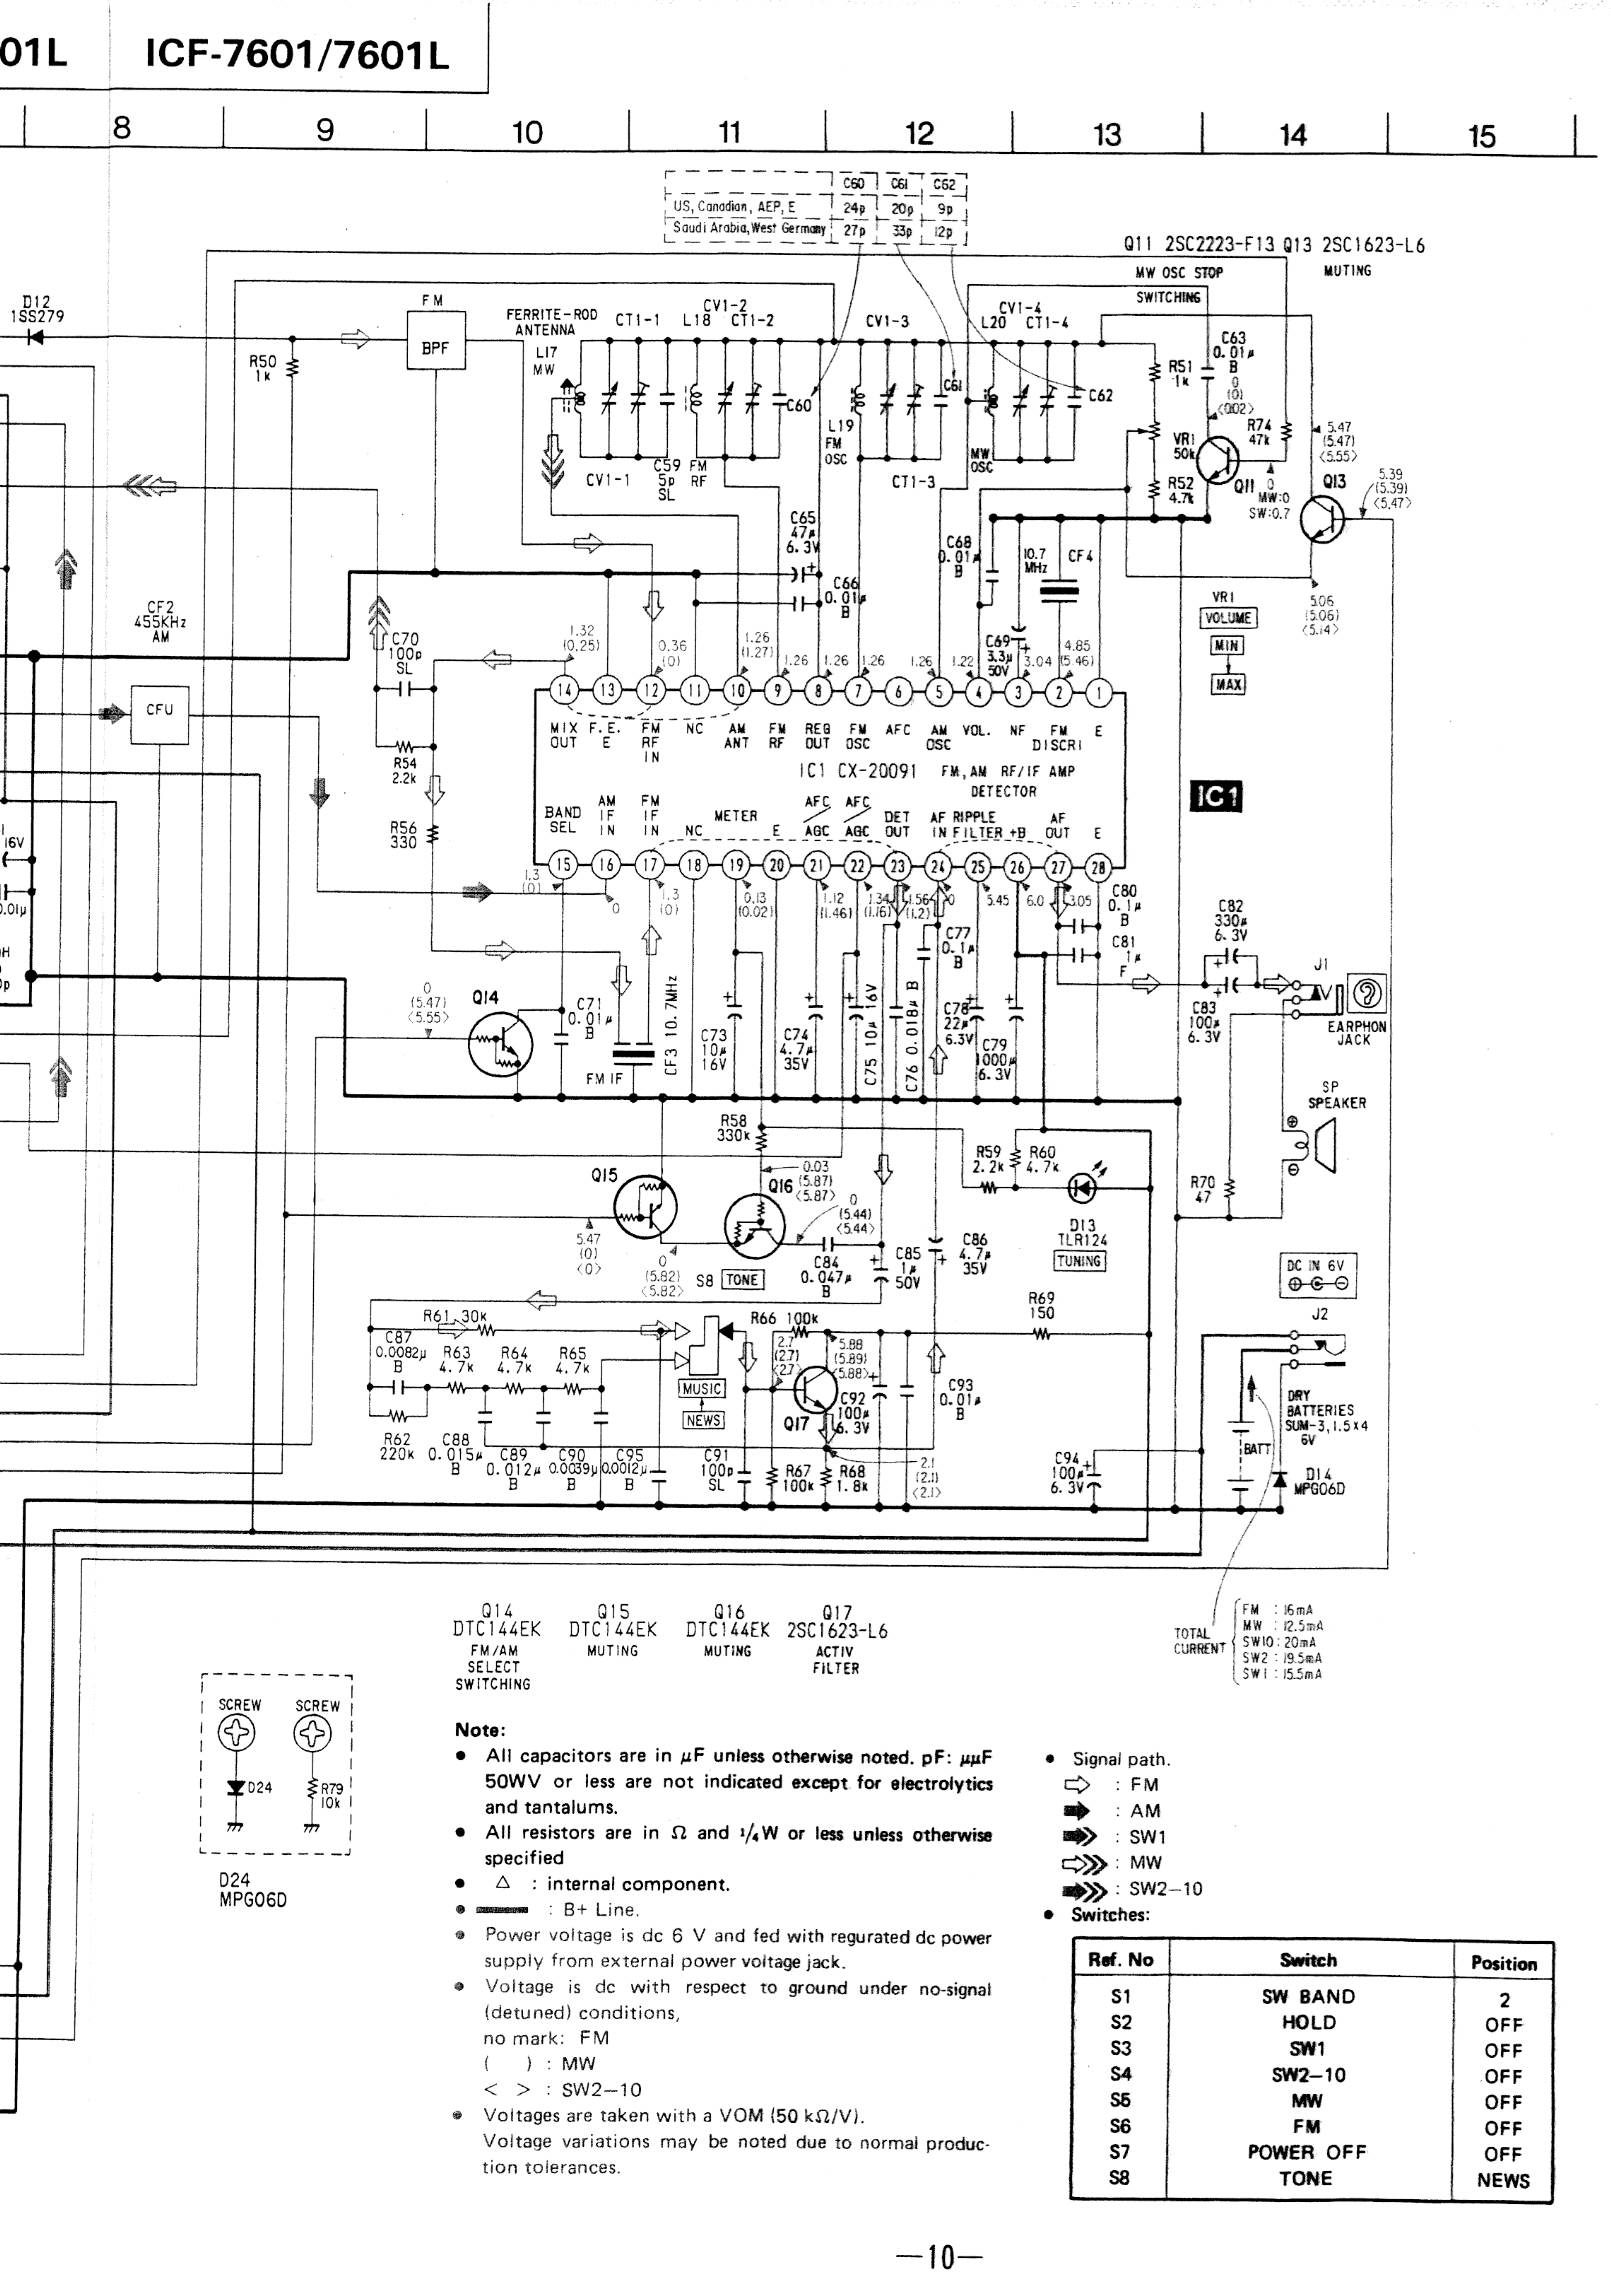 international 7600 wiring schematic wiring diagram u2022 rh 45 32 164 46